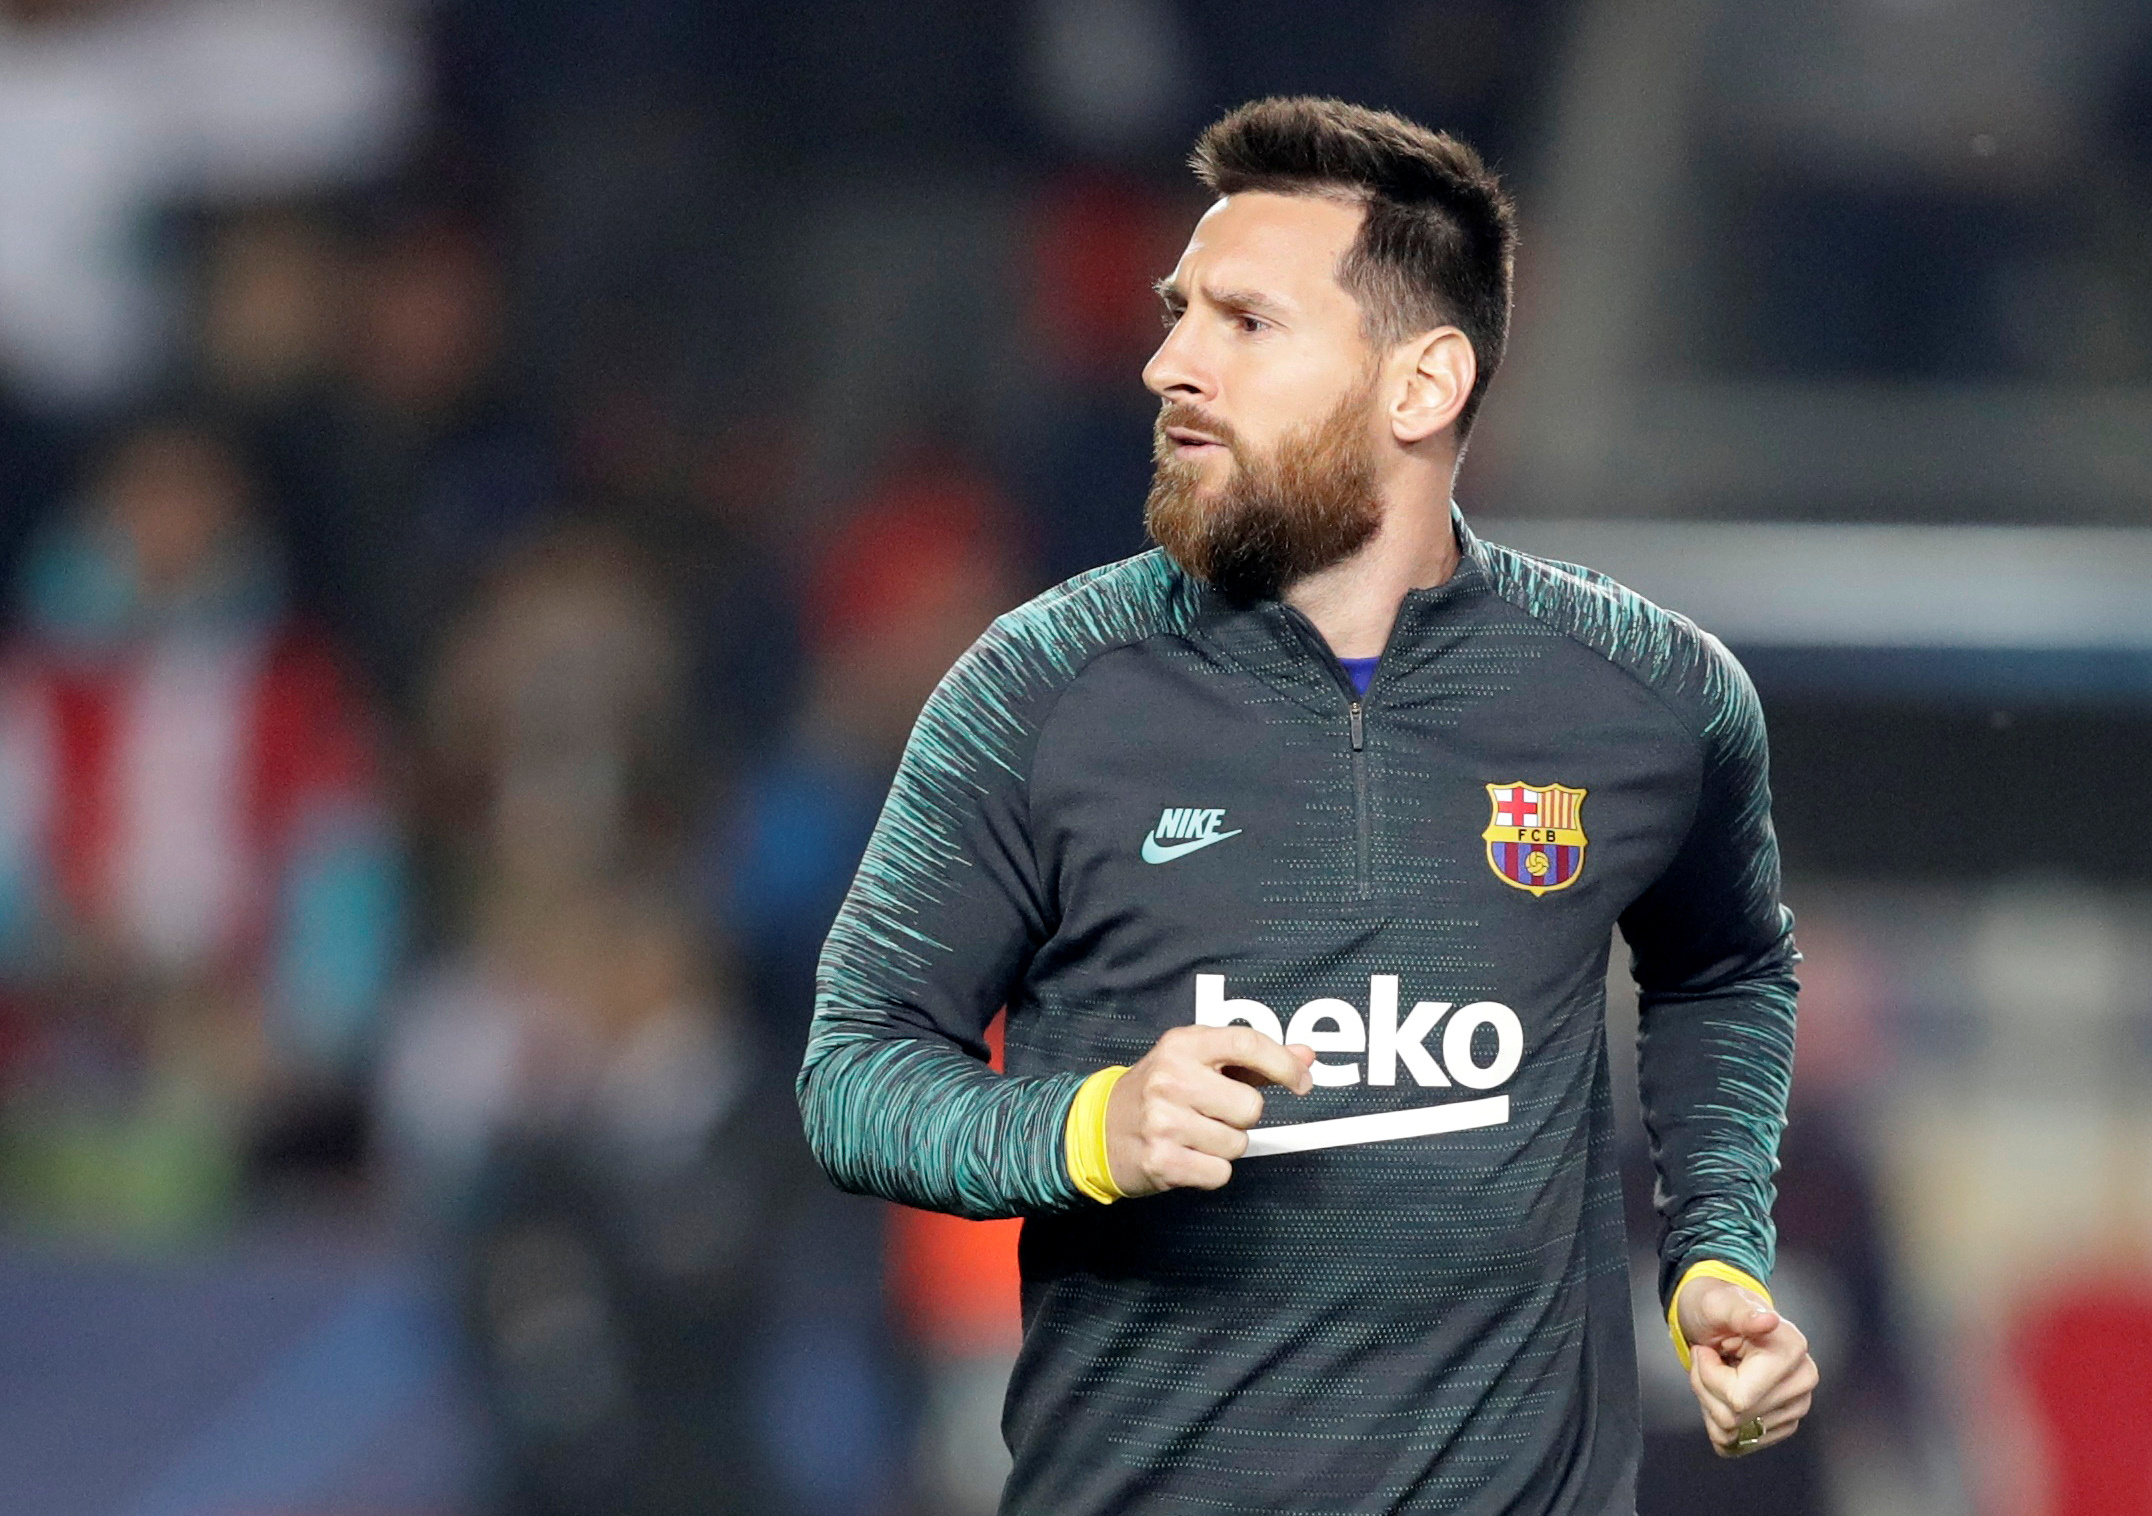 Lionel Messi transfer would transform Manchester City instantly